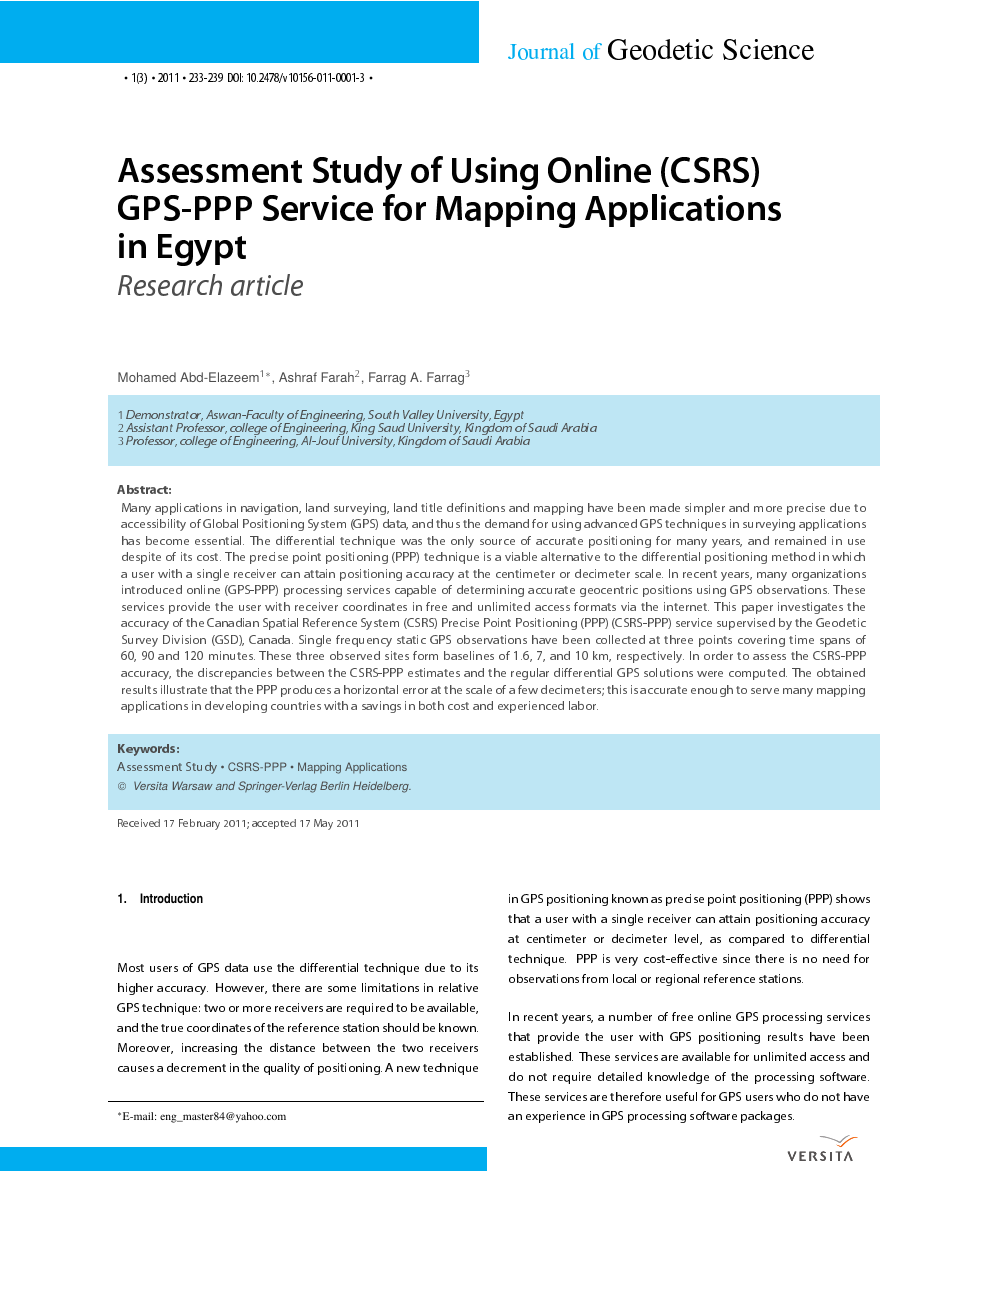 Assessment Study of Using Online (CSRS) GPS-PPP Service for Mapping